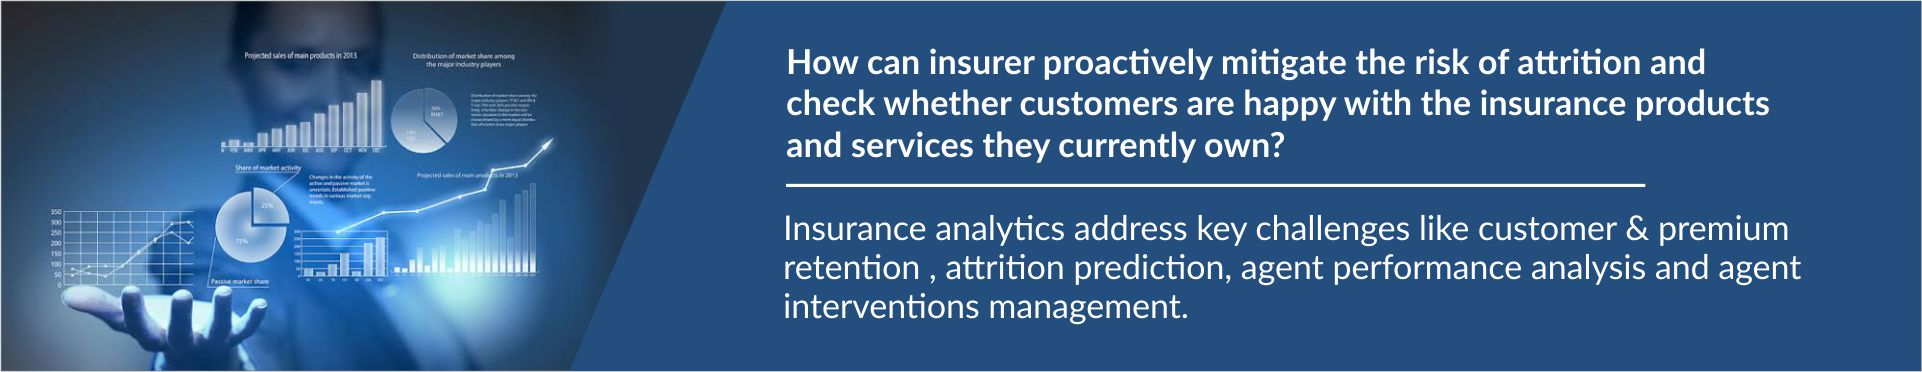 Insurance analytics case studies, Insurance Data Analytics, Insurance Analytics Solutions, Insurance Analytics Companies